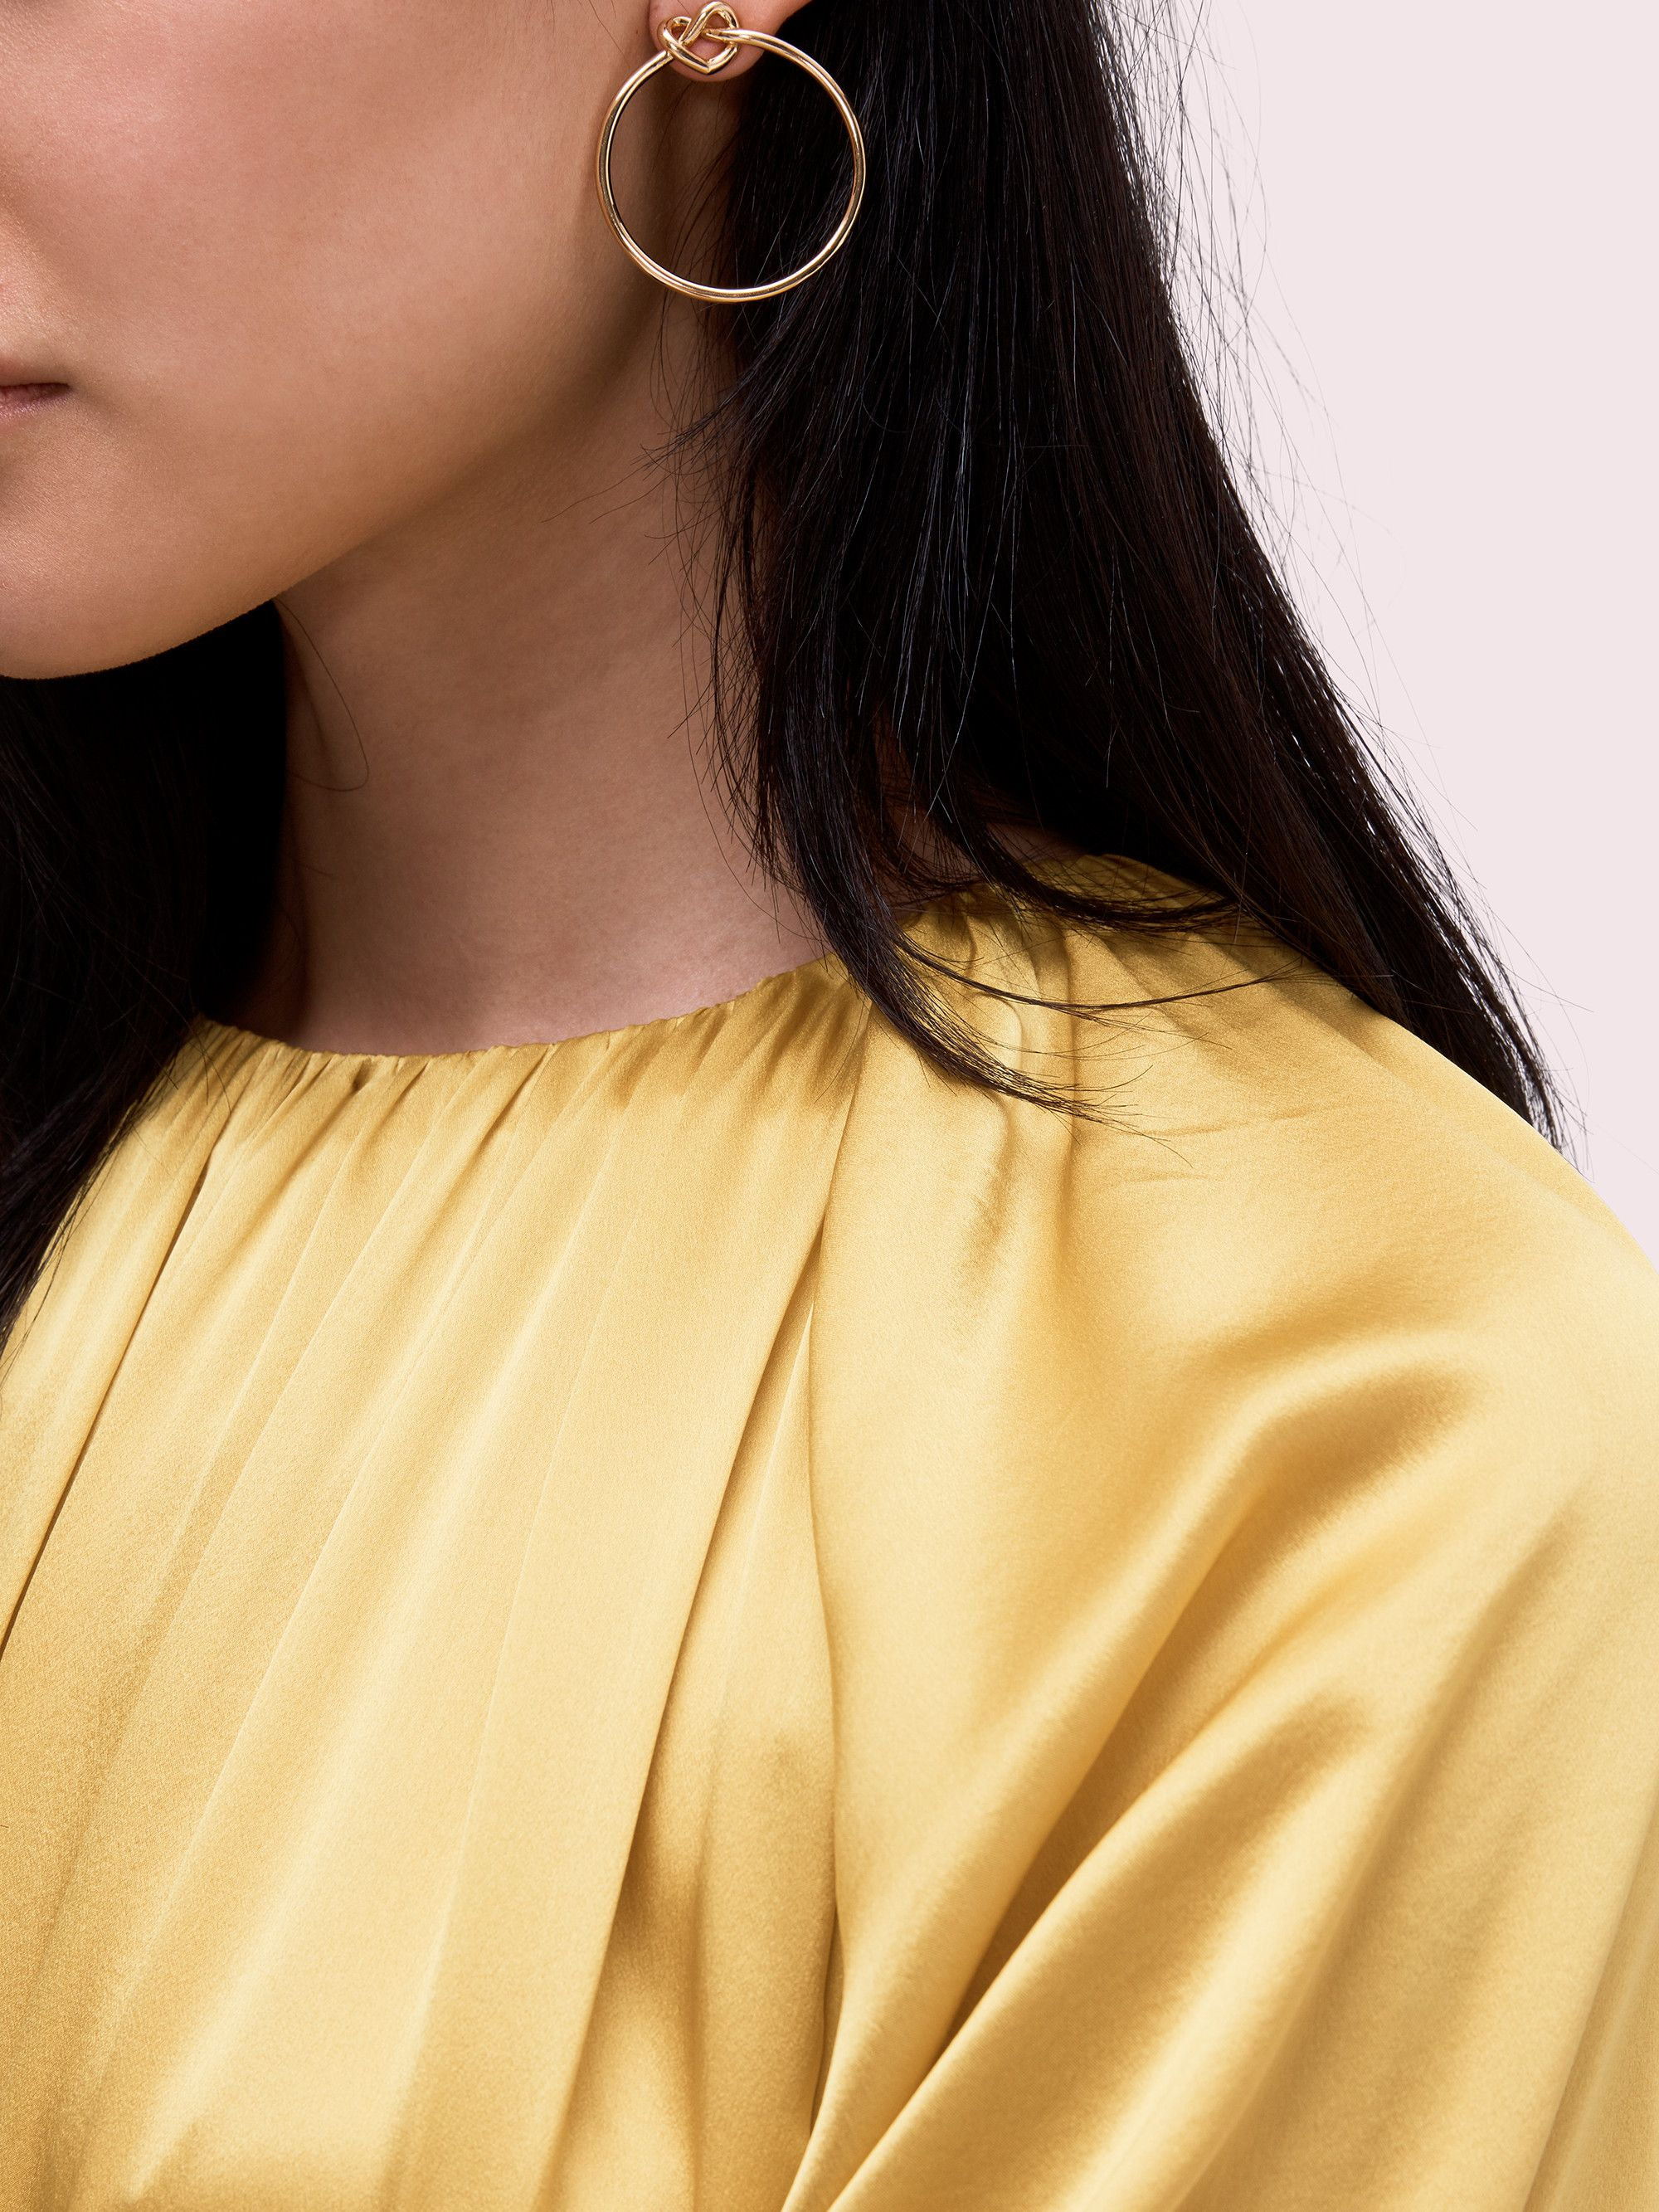 280a1631b Kate Spade loves me knot hoops in 2019 | Stuff I would like | Knots ...